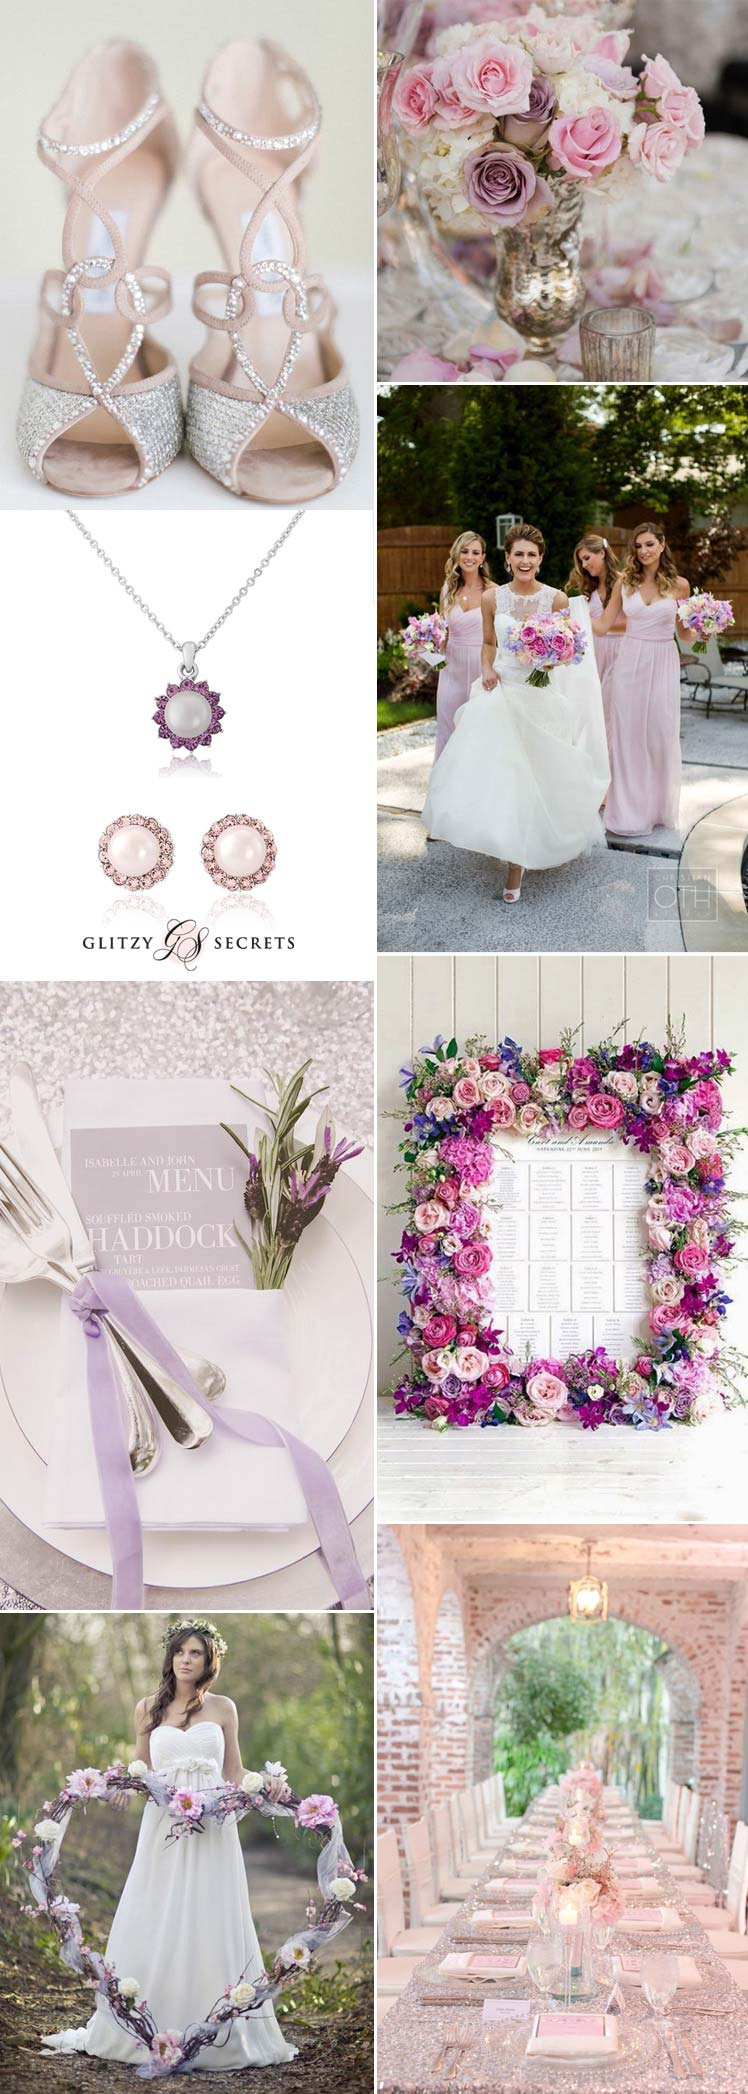 the prettiest wedding theme - pink, lilac and silver